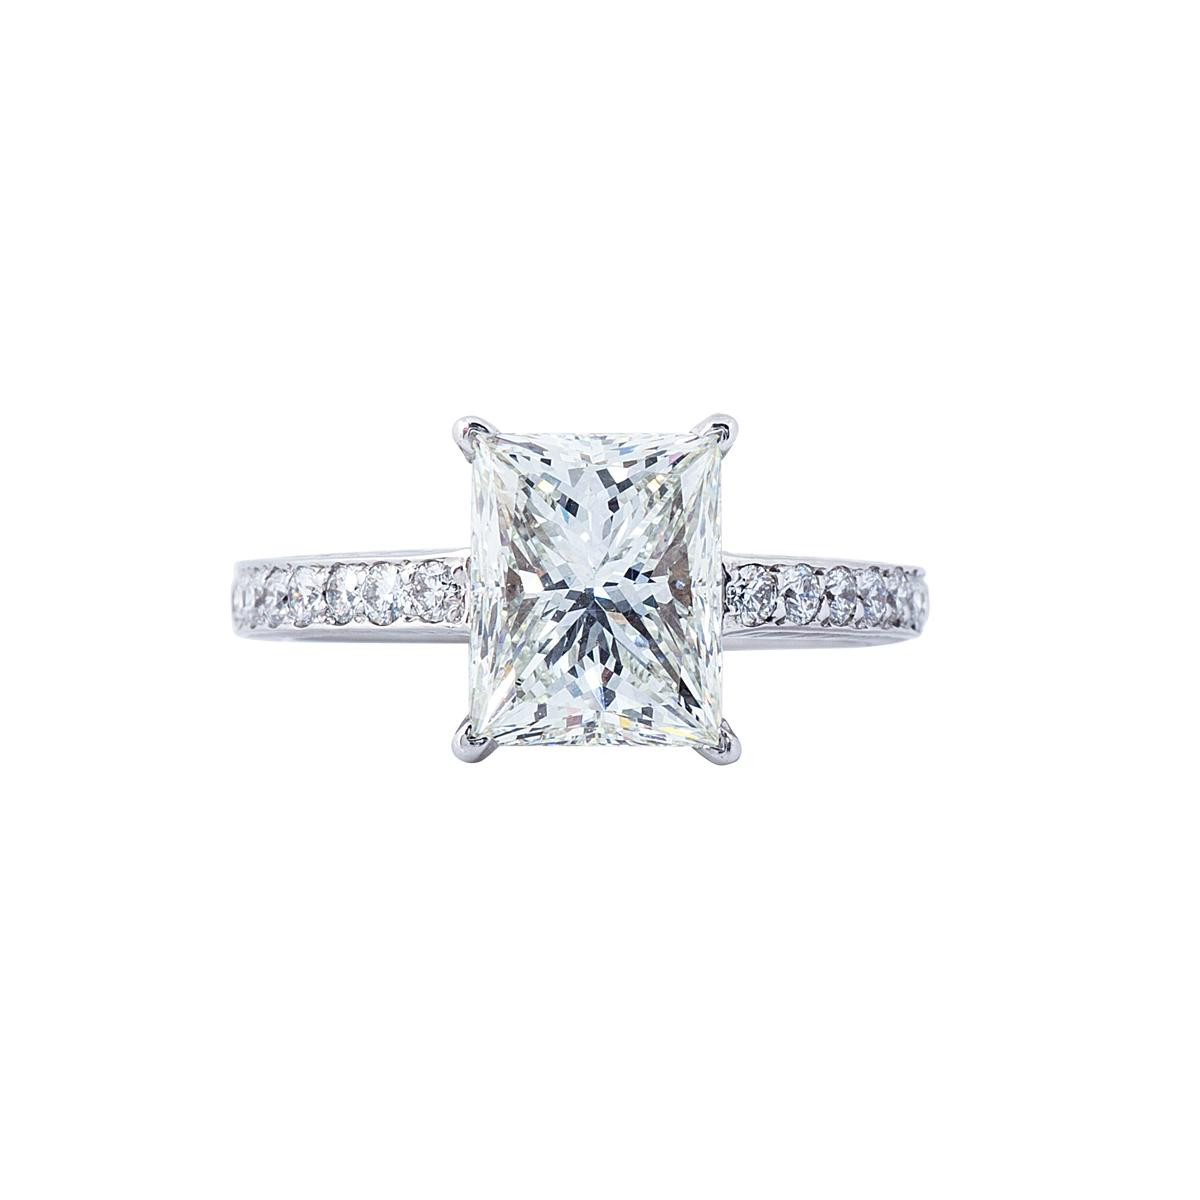 Vintage 3.31 CT Princess Cut Engagement Ring